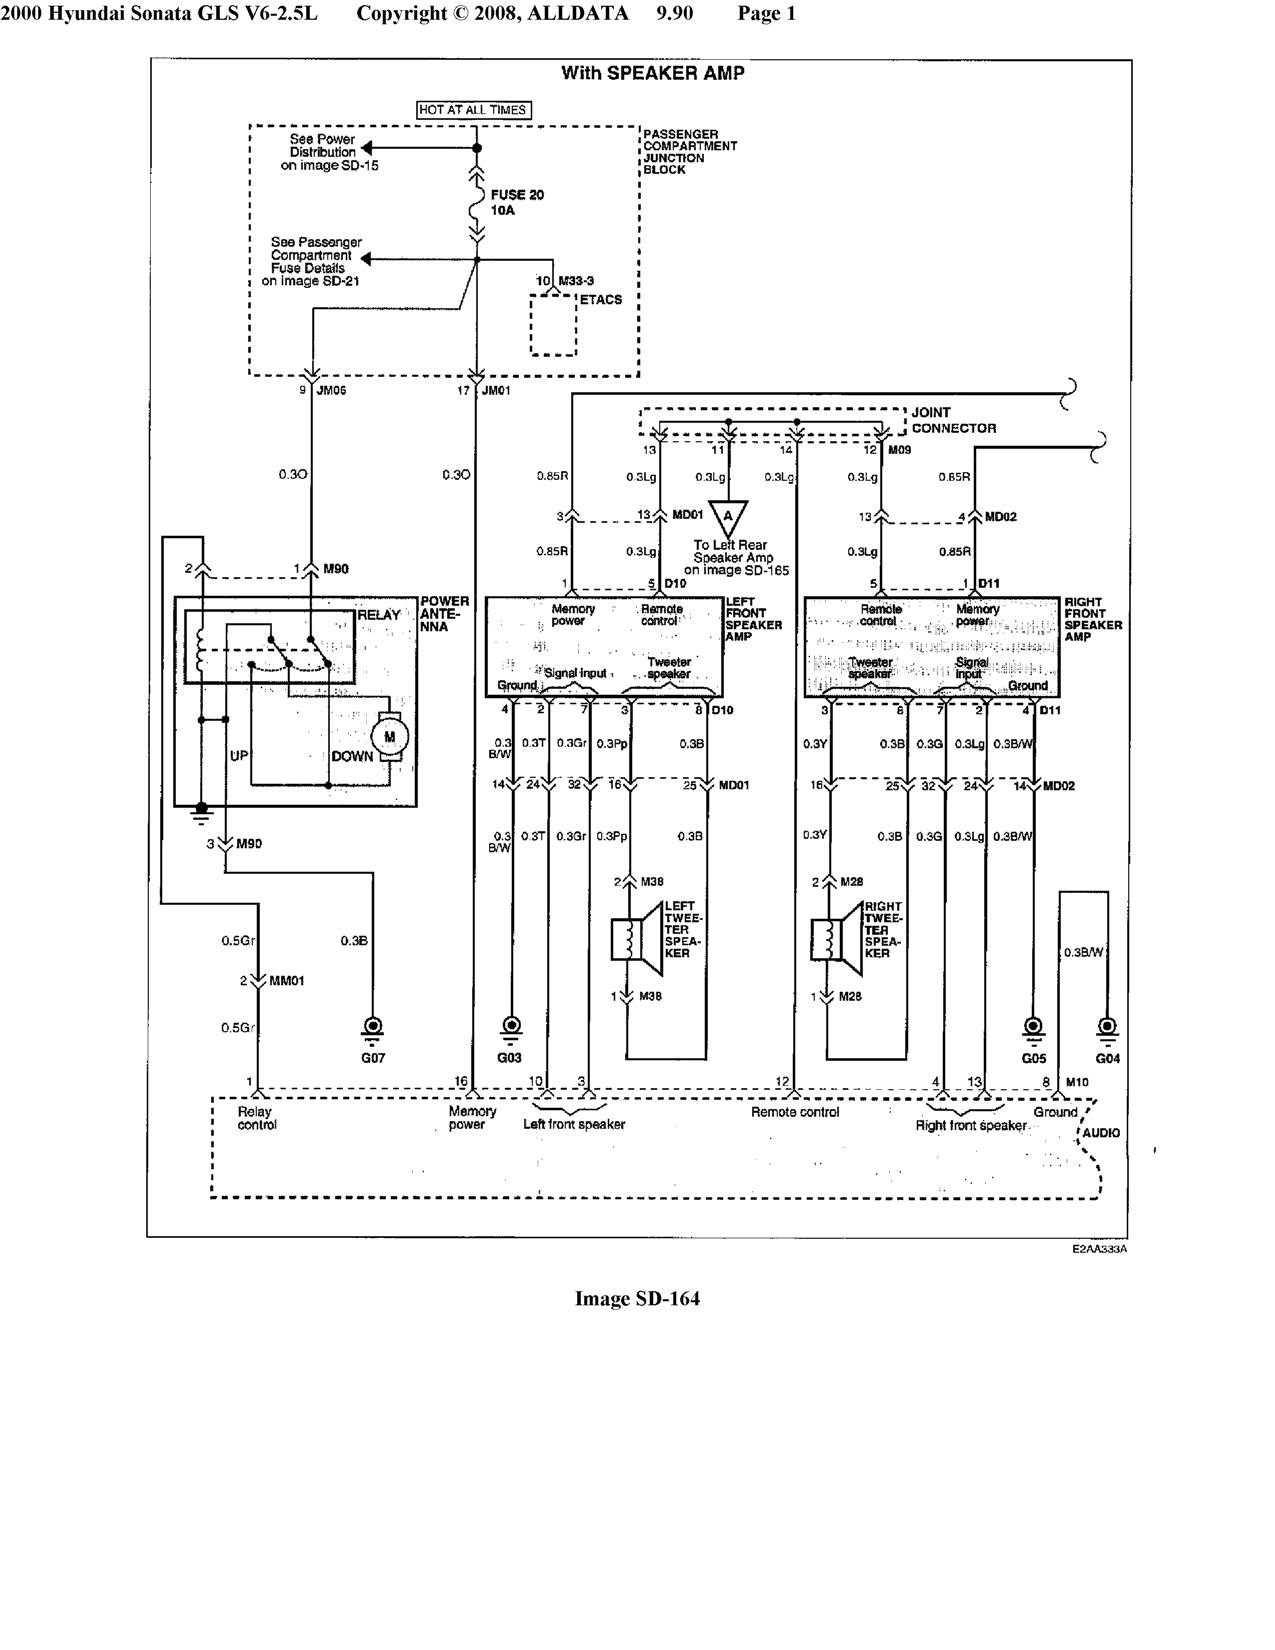 hyundai xg350 radio wiring diagram wiring diagram library u2022 rh wiringboxa today Hyundai Radio Wiring Diagram Hyundai Sonata Wiring-Diagram